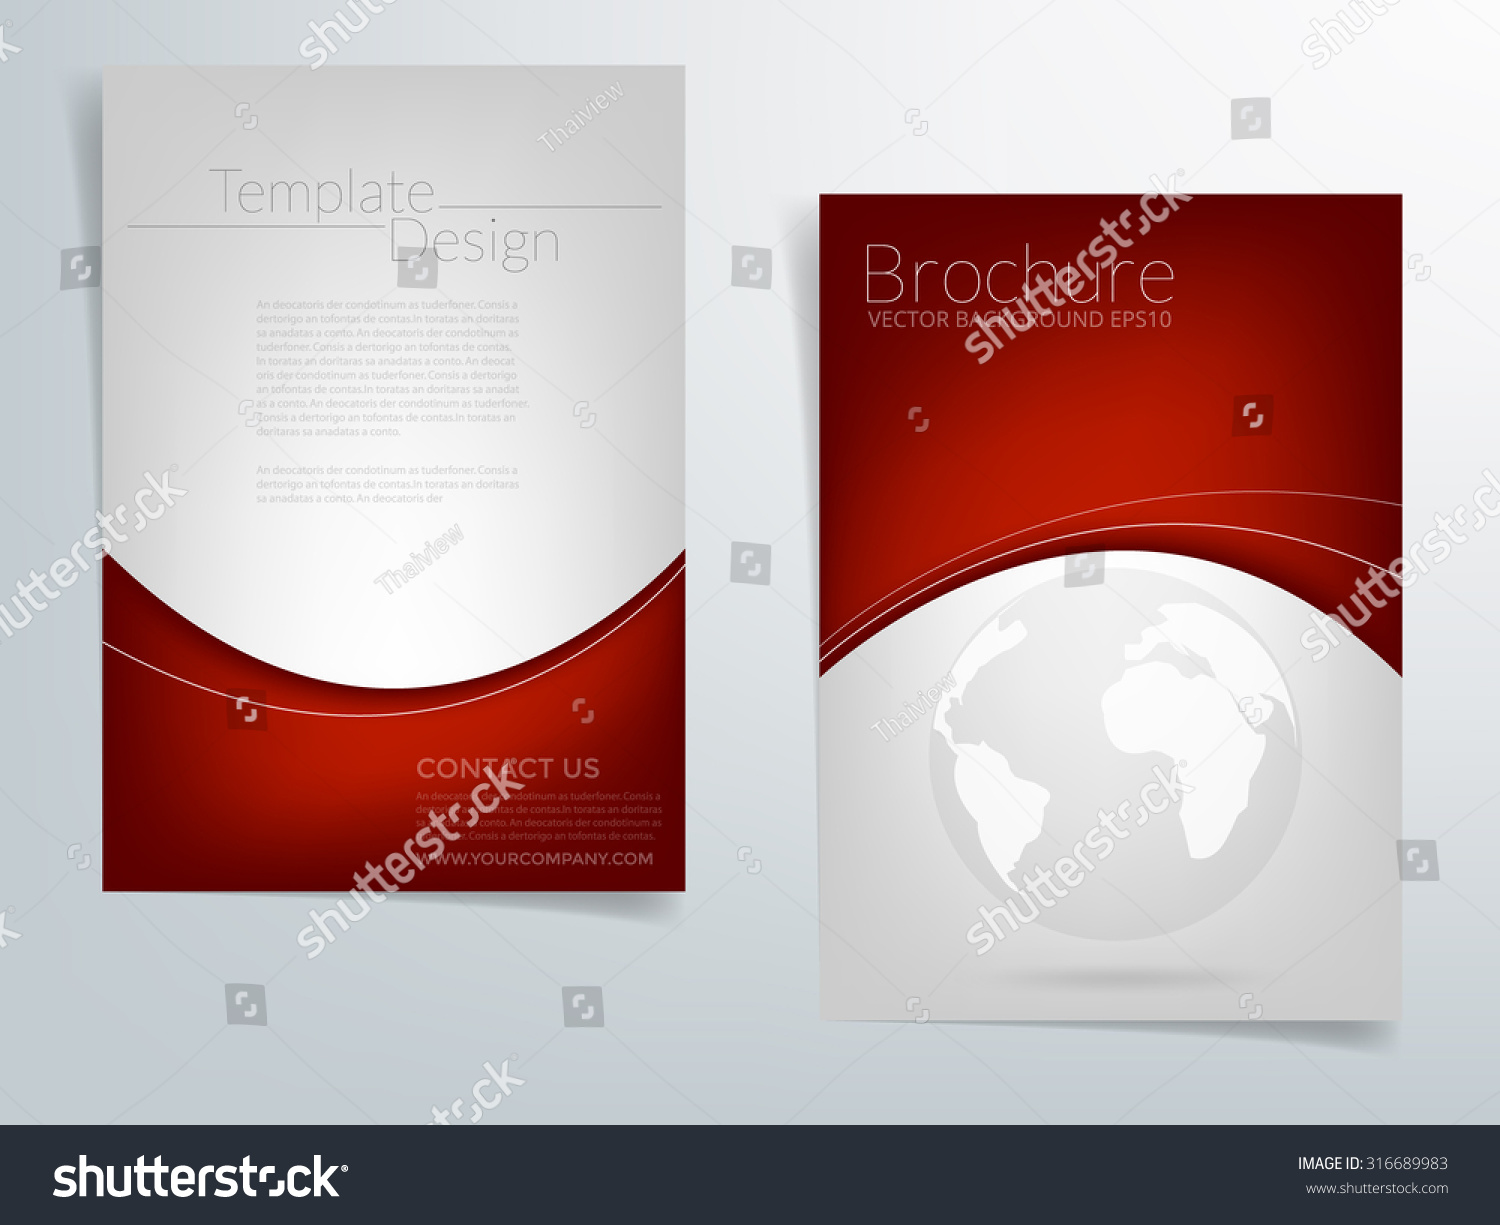 red brochure template - brochure background design red the